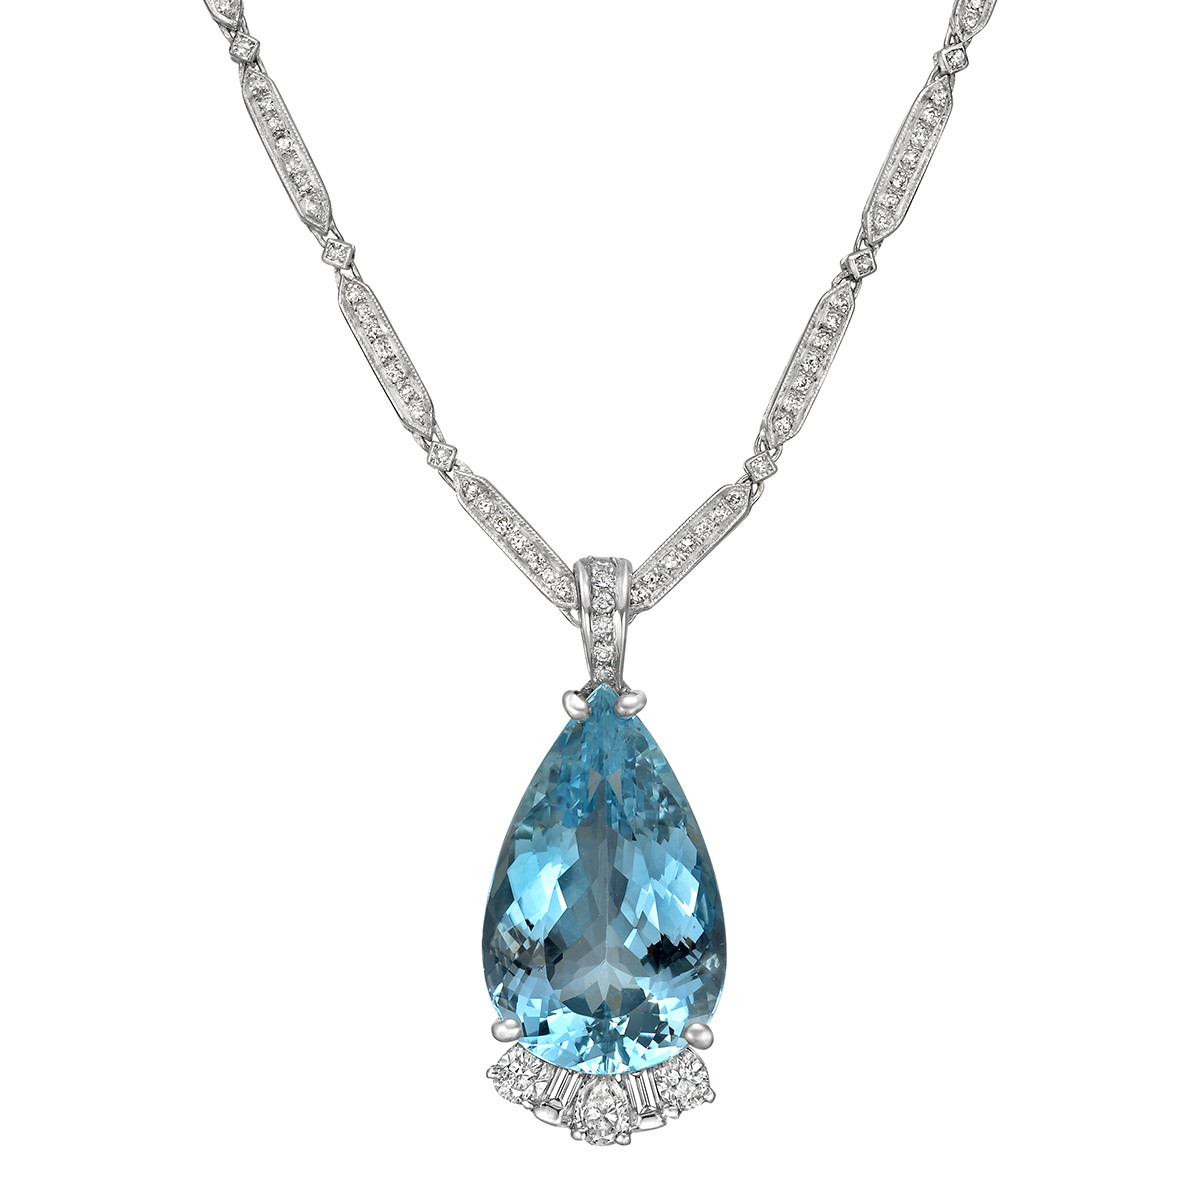 Aquamarine & Diamond Pendant Necklace